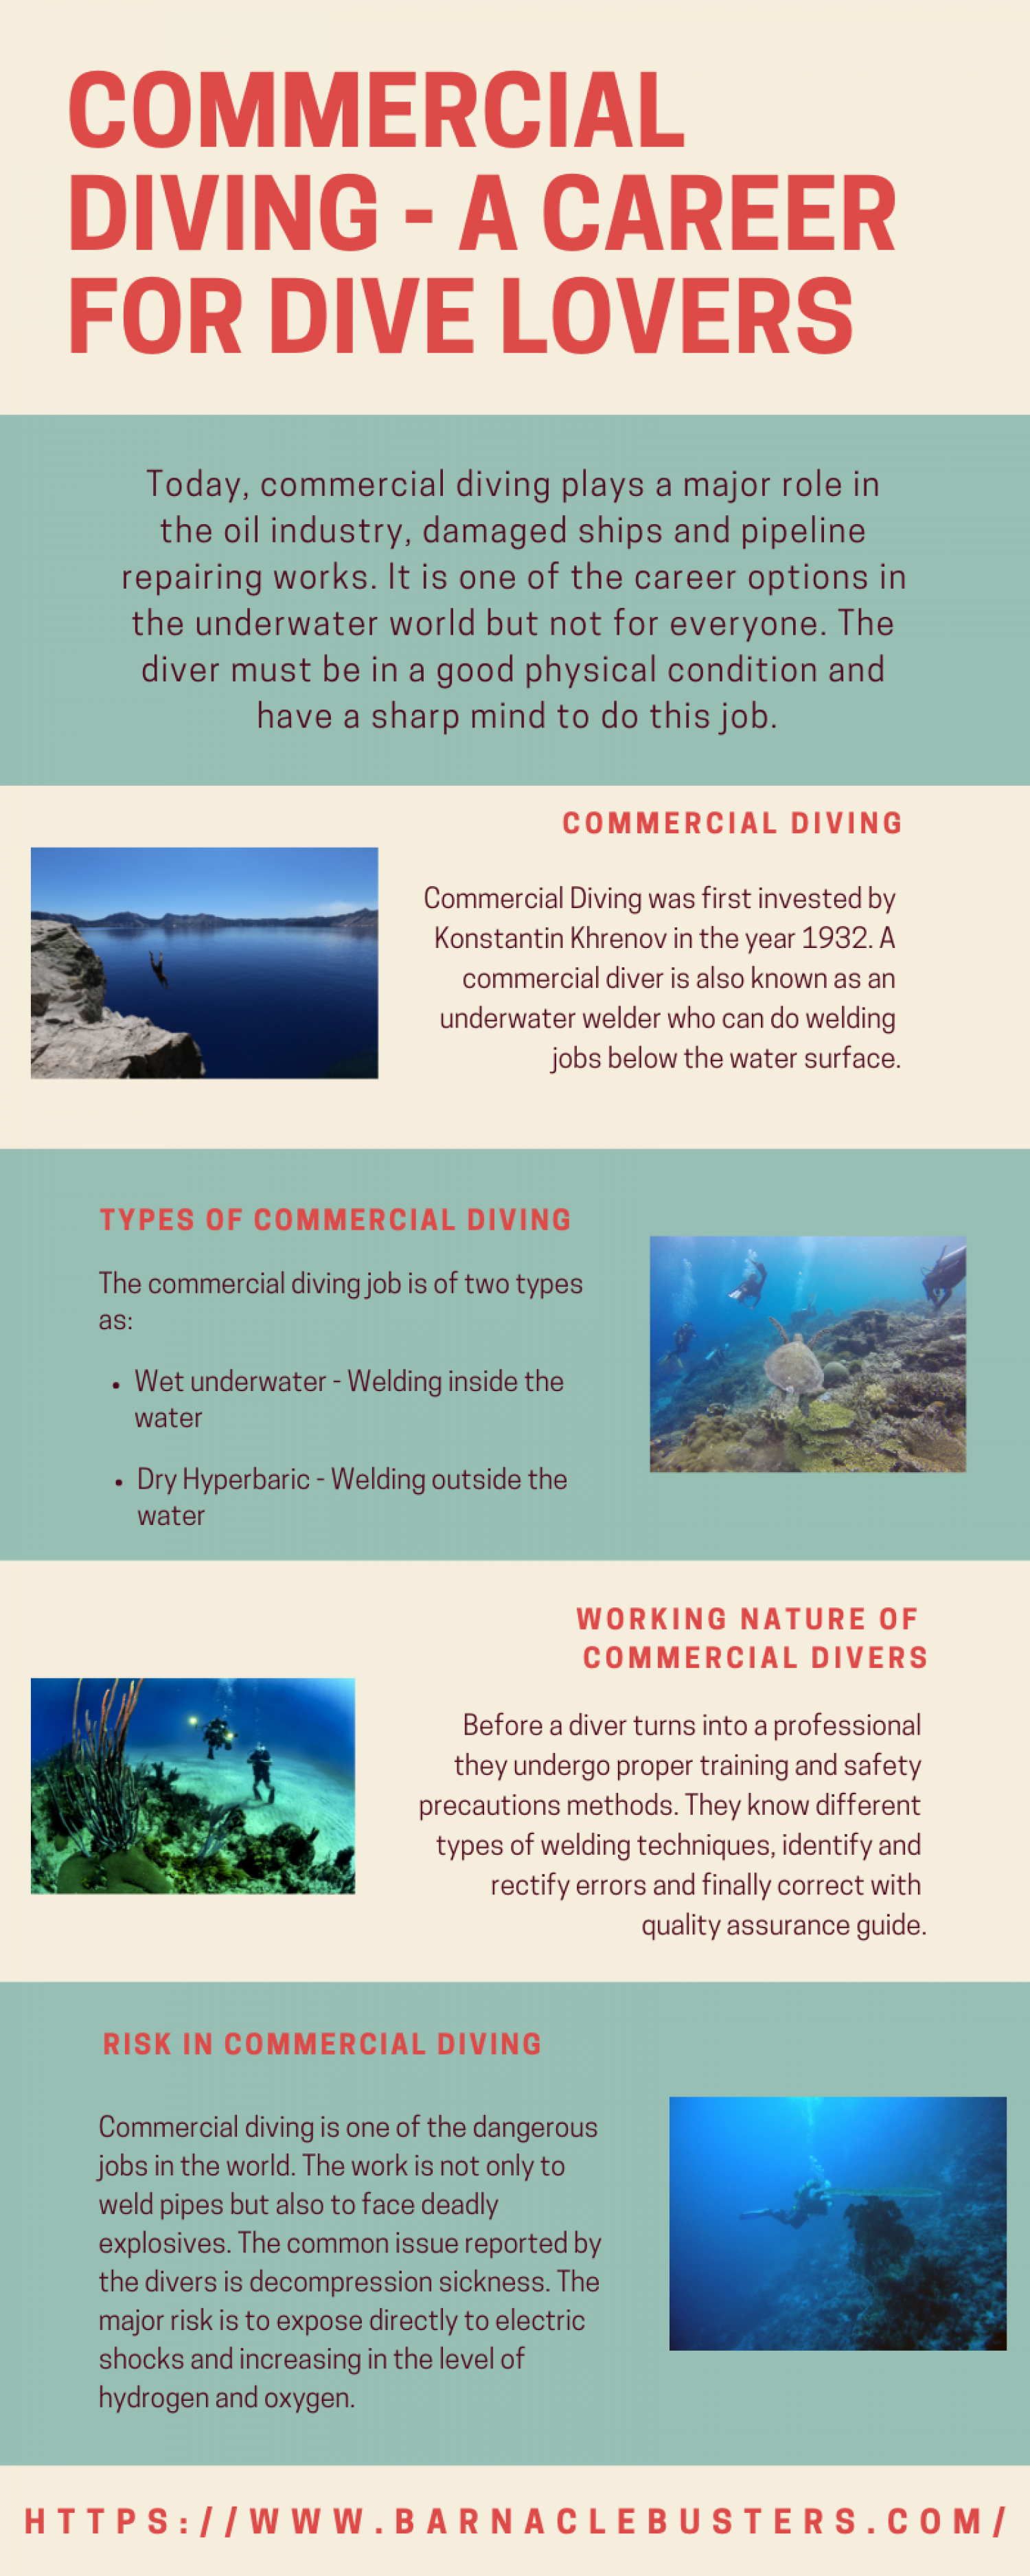 Commercial Diving - A Career for Dive Lovers Infographic